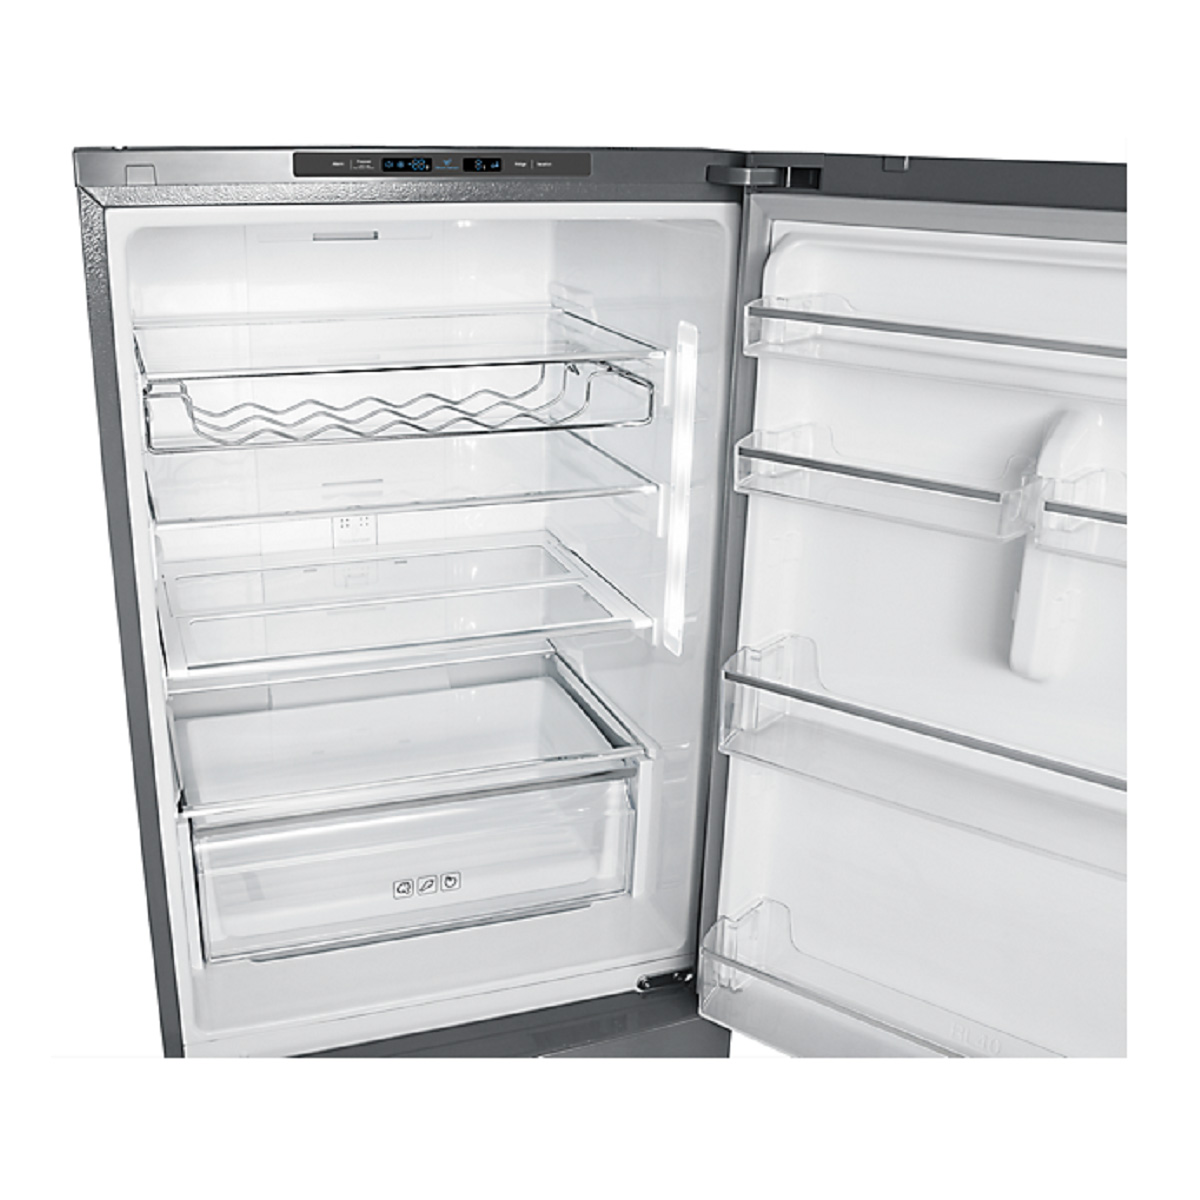 Samsung SRL458ELS 458Litres Bottom Mount Fridge 35959